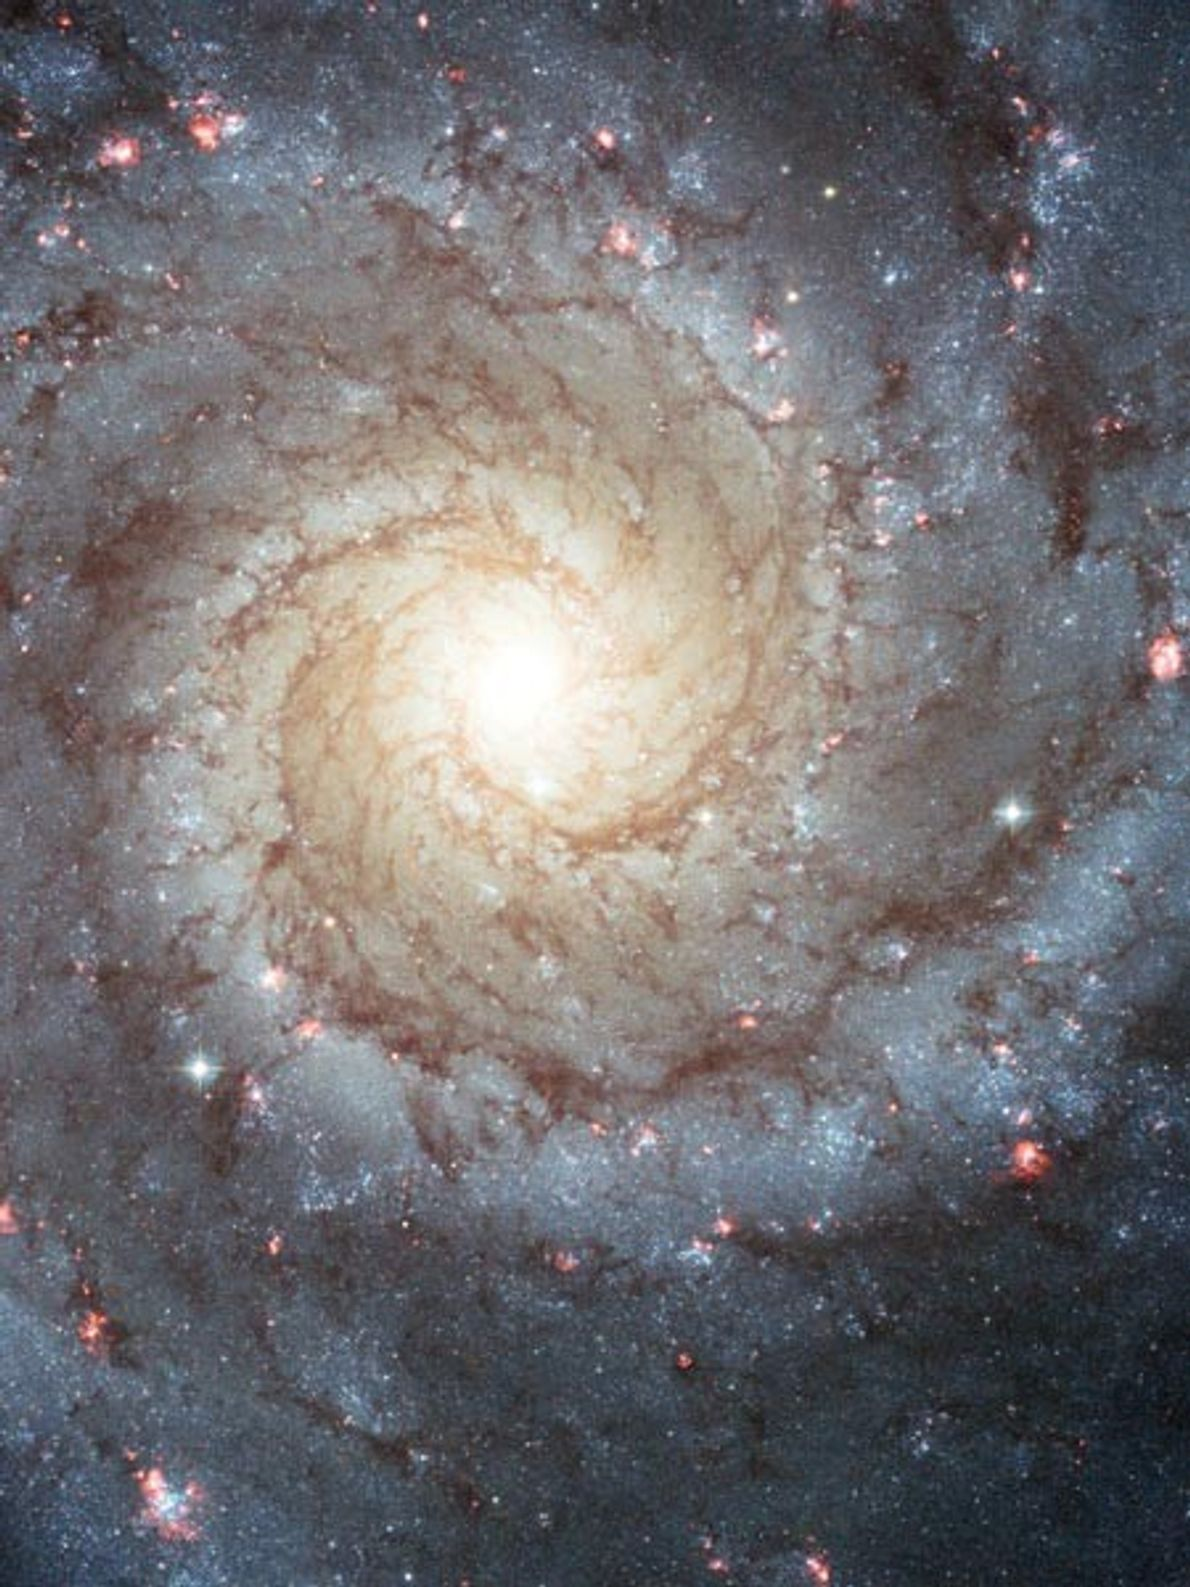 A face-on view of the Messier 74 galaxy shows billions of stars forming within its spiral ...